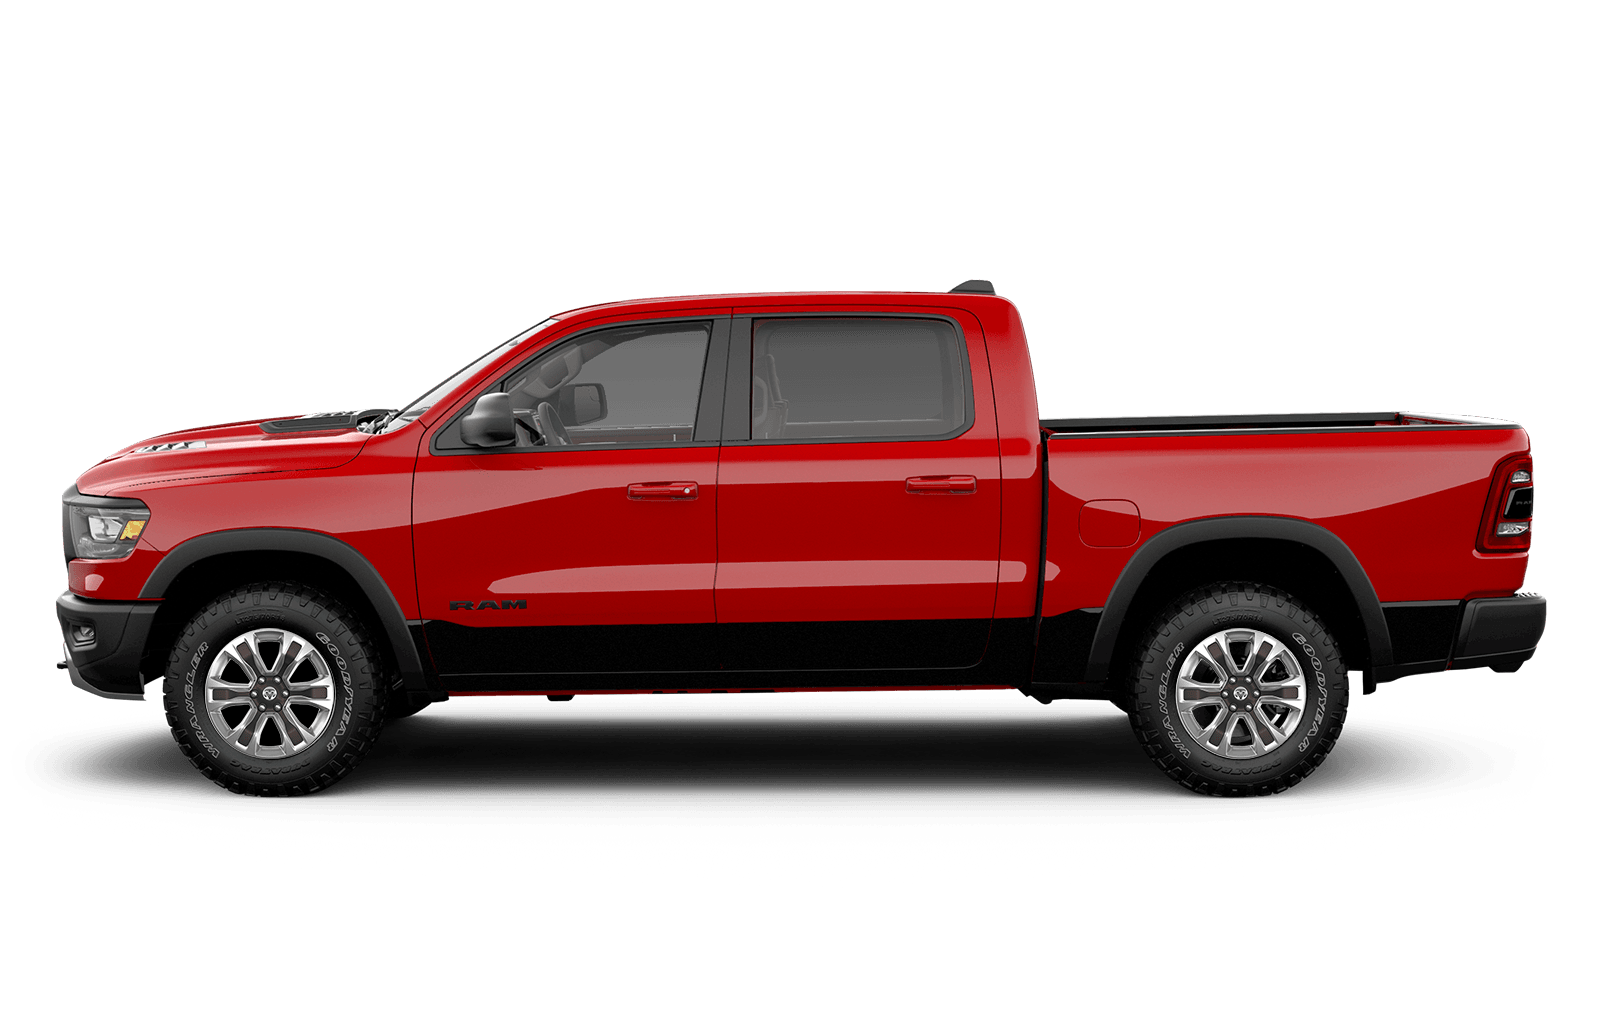 2019 Ram 1500 20inch aluminum wheels on available for Laramie Longhorn with lower two tone paint